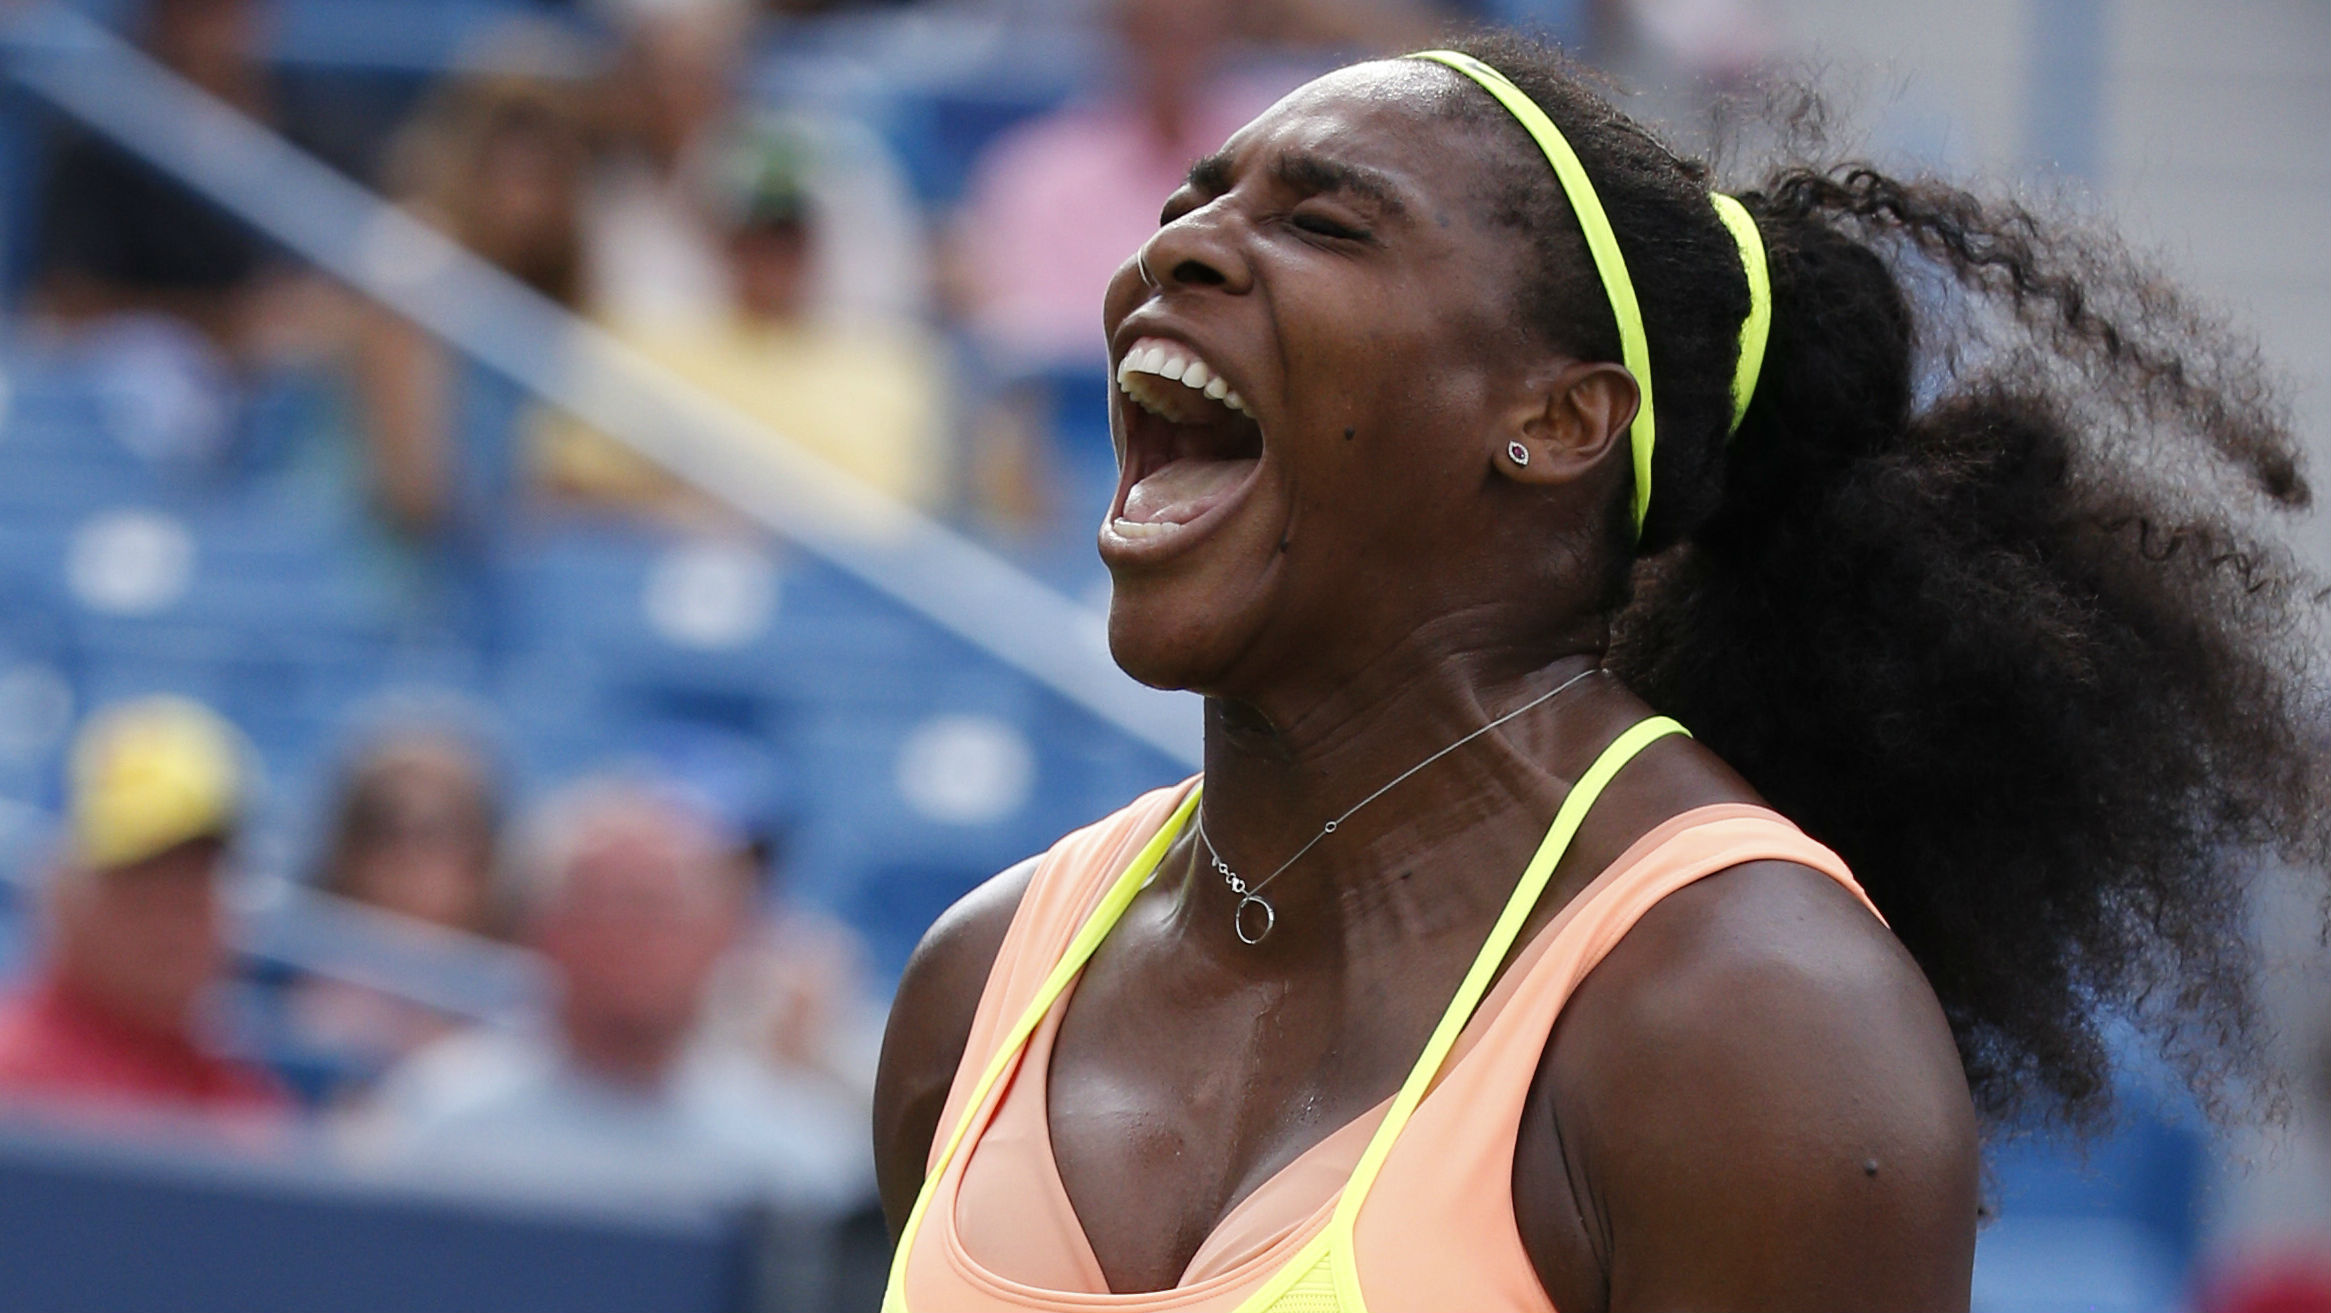 Serena Williams reacts during a final match against Simona Halep, of Romania, at the Western & Southern Open tennis tournament, Sunday, Aug. 23, 2015, in Mason, Ohio. Williams defeated Halep 6-3, 7-6 (5). (AP Photo/John Minchillo)